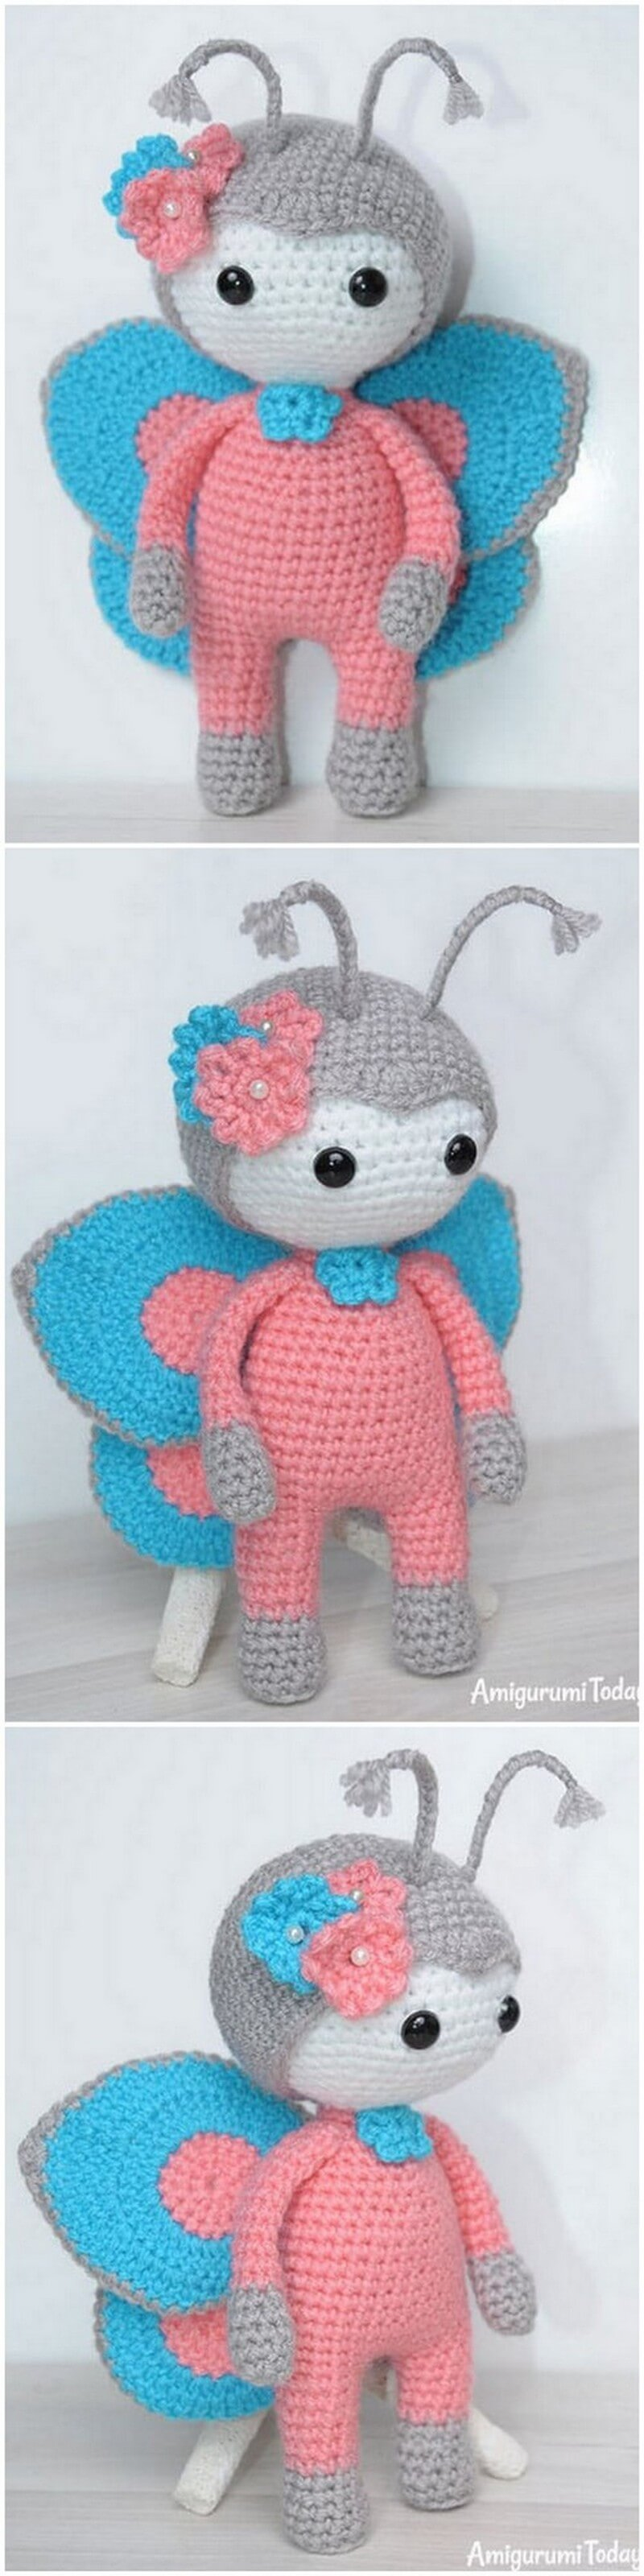 Crochet Amigurumi Doll Pattern (52)